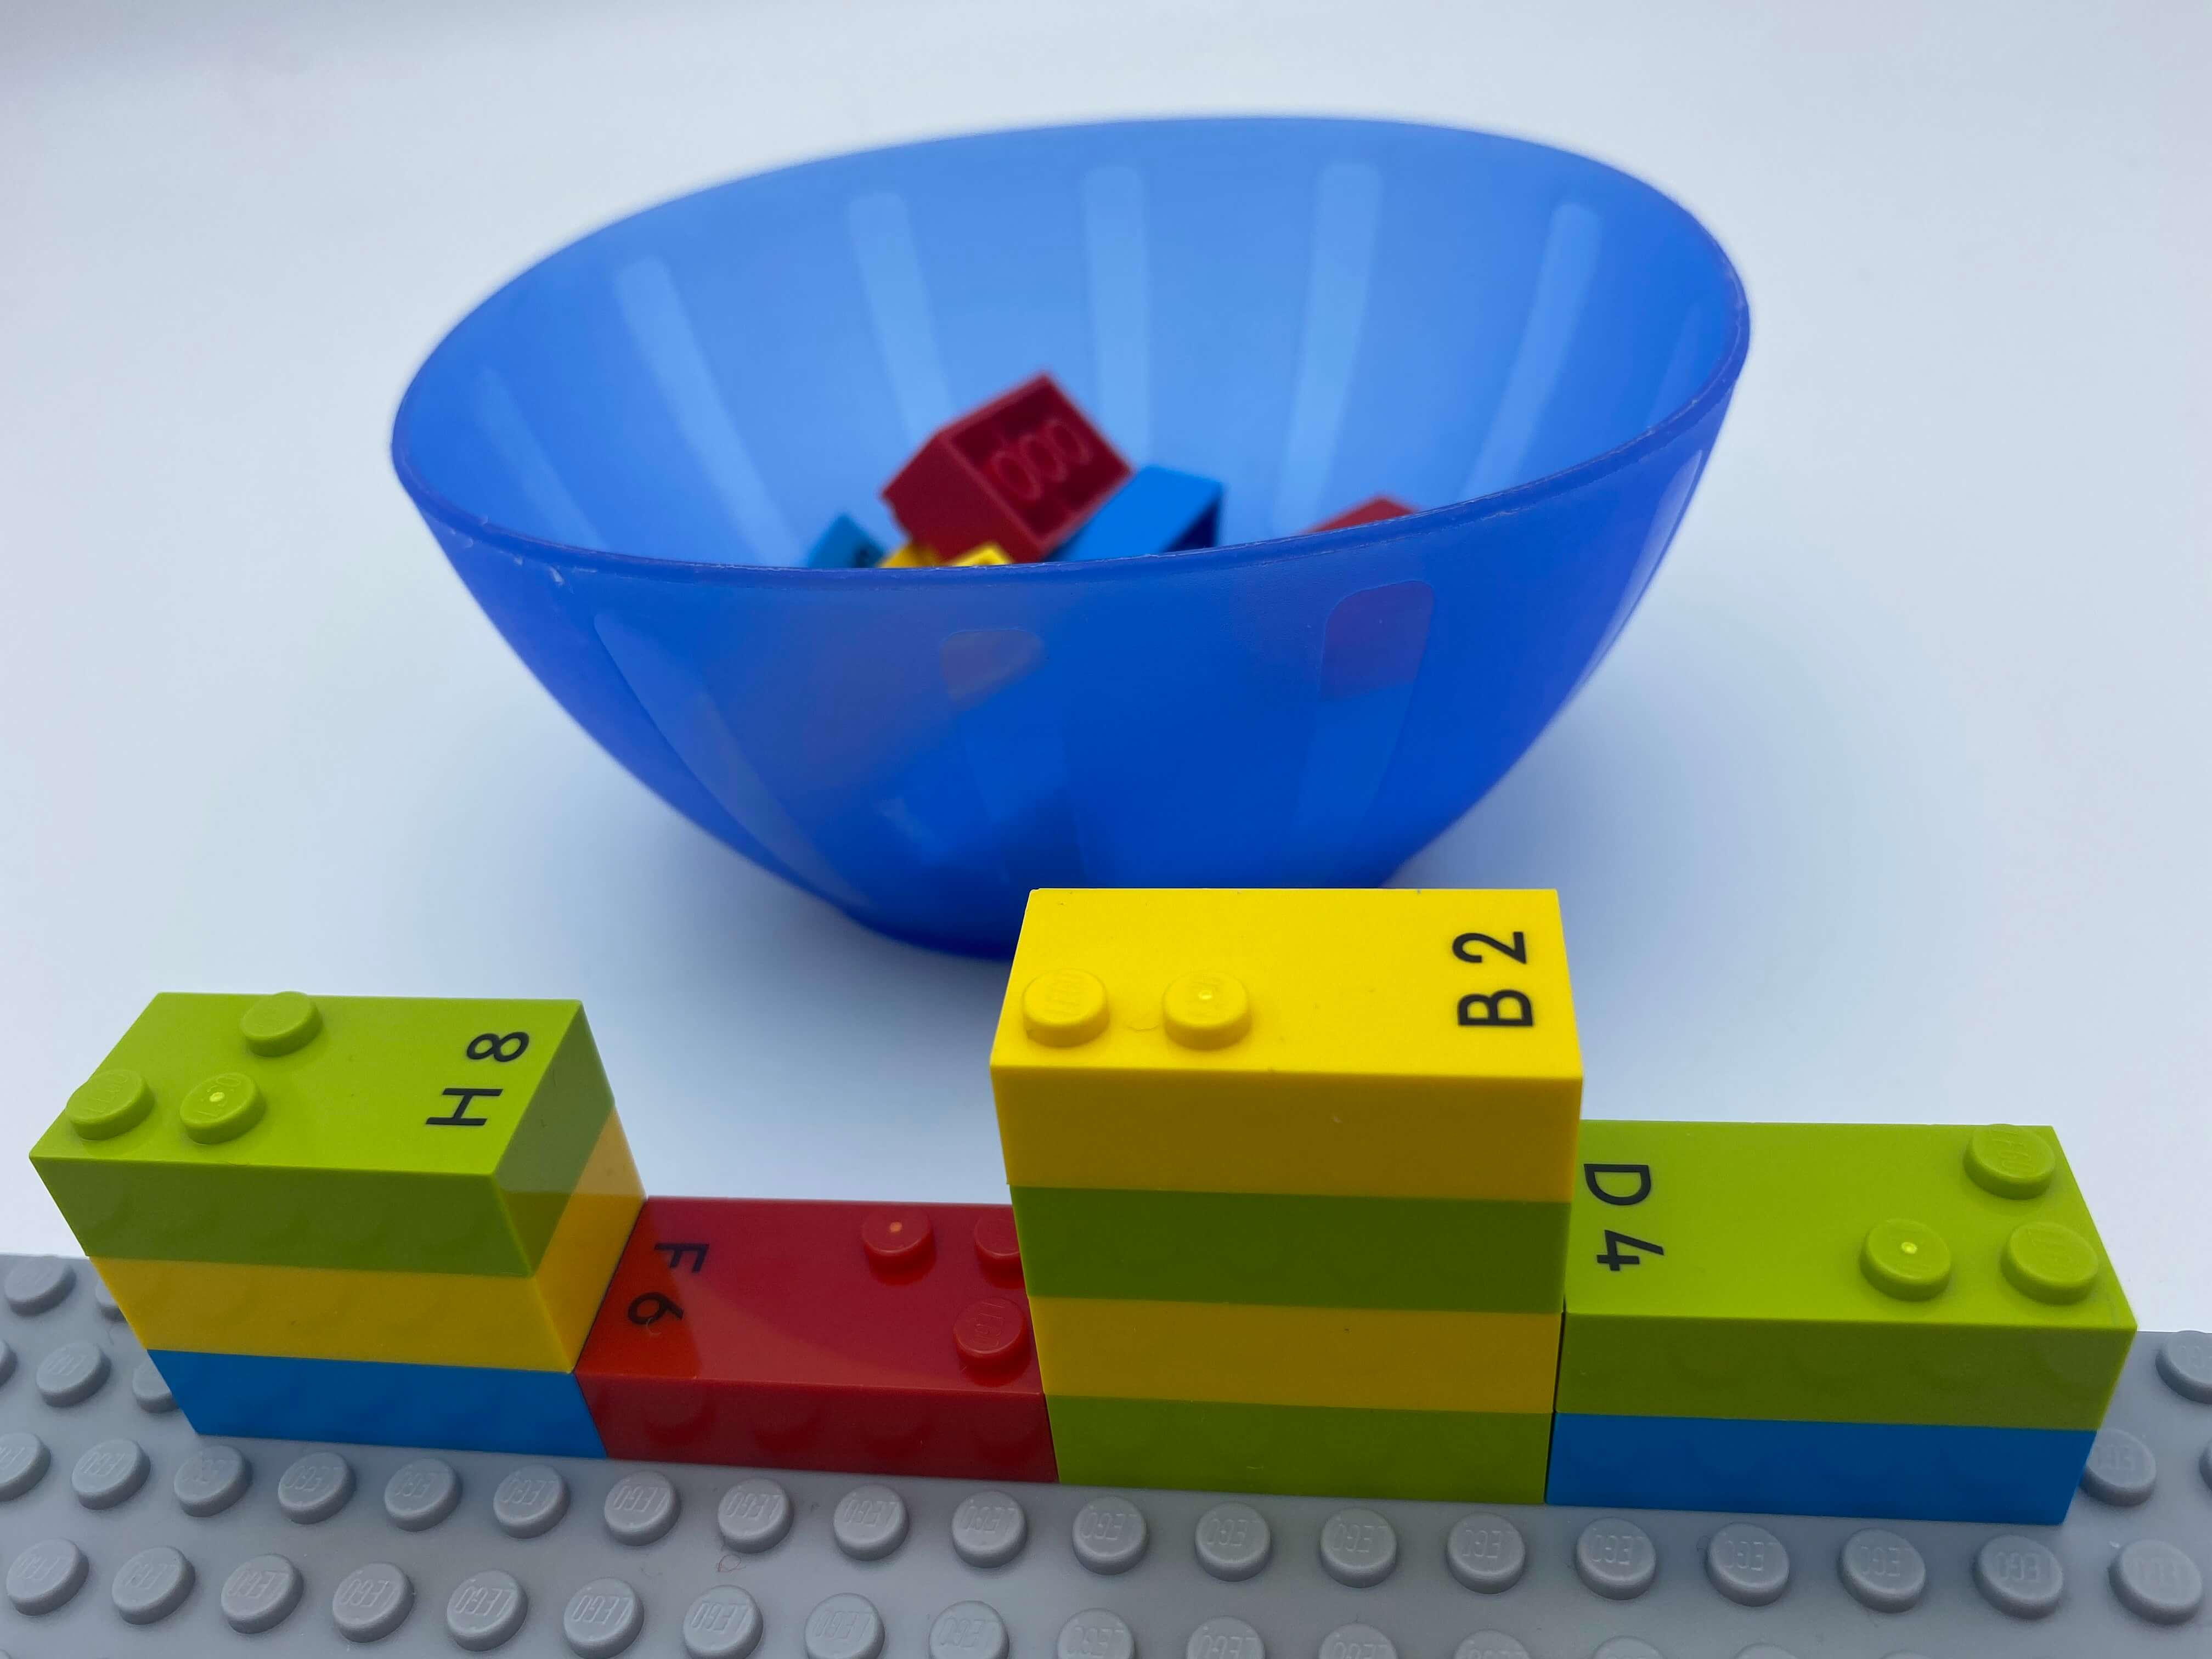 A wall of 10 number bricks on the top of the base plate , a bowl with bricks. We can see number bricks 8, 6, 2, 4.